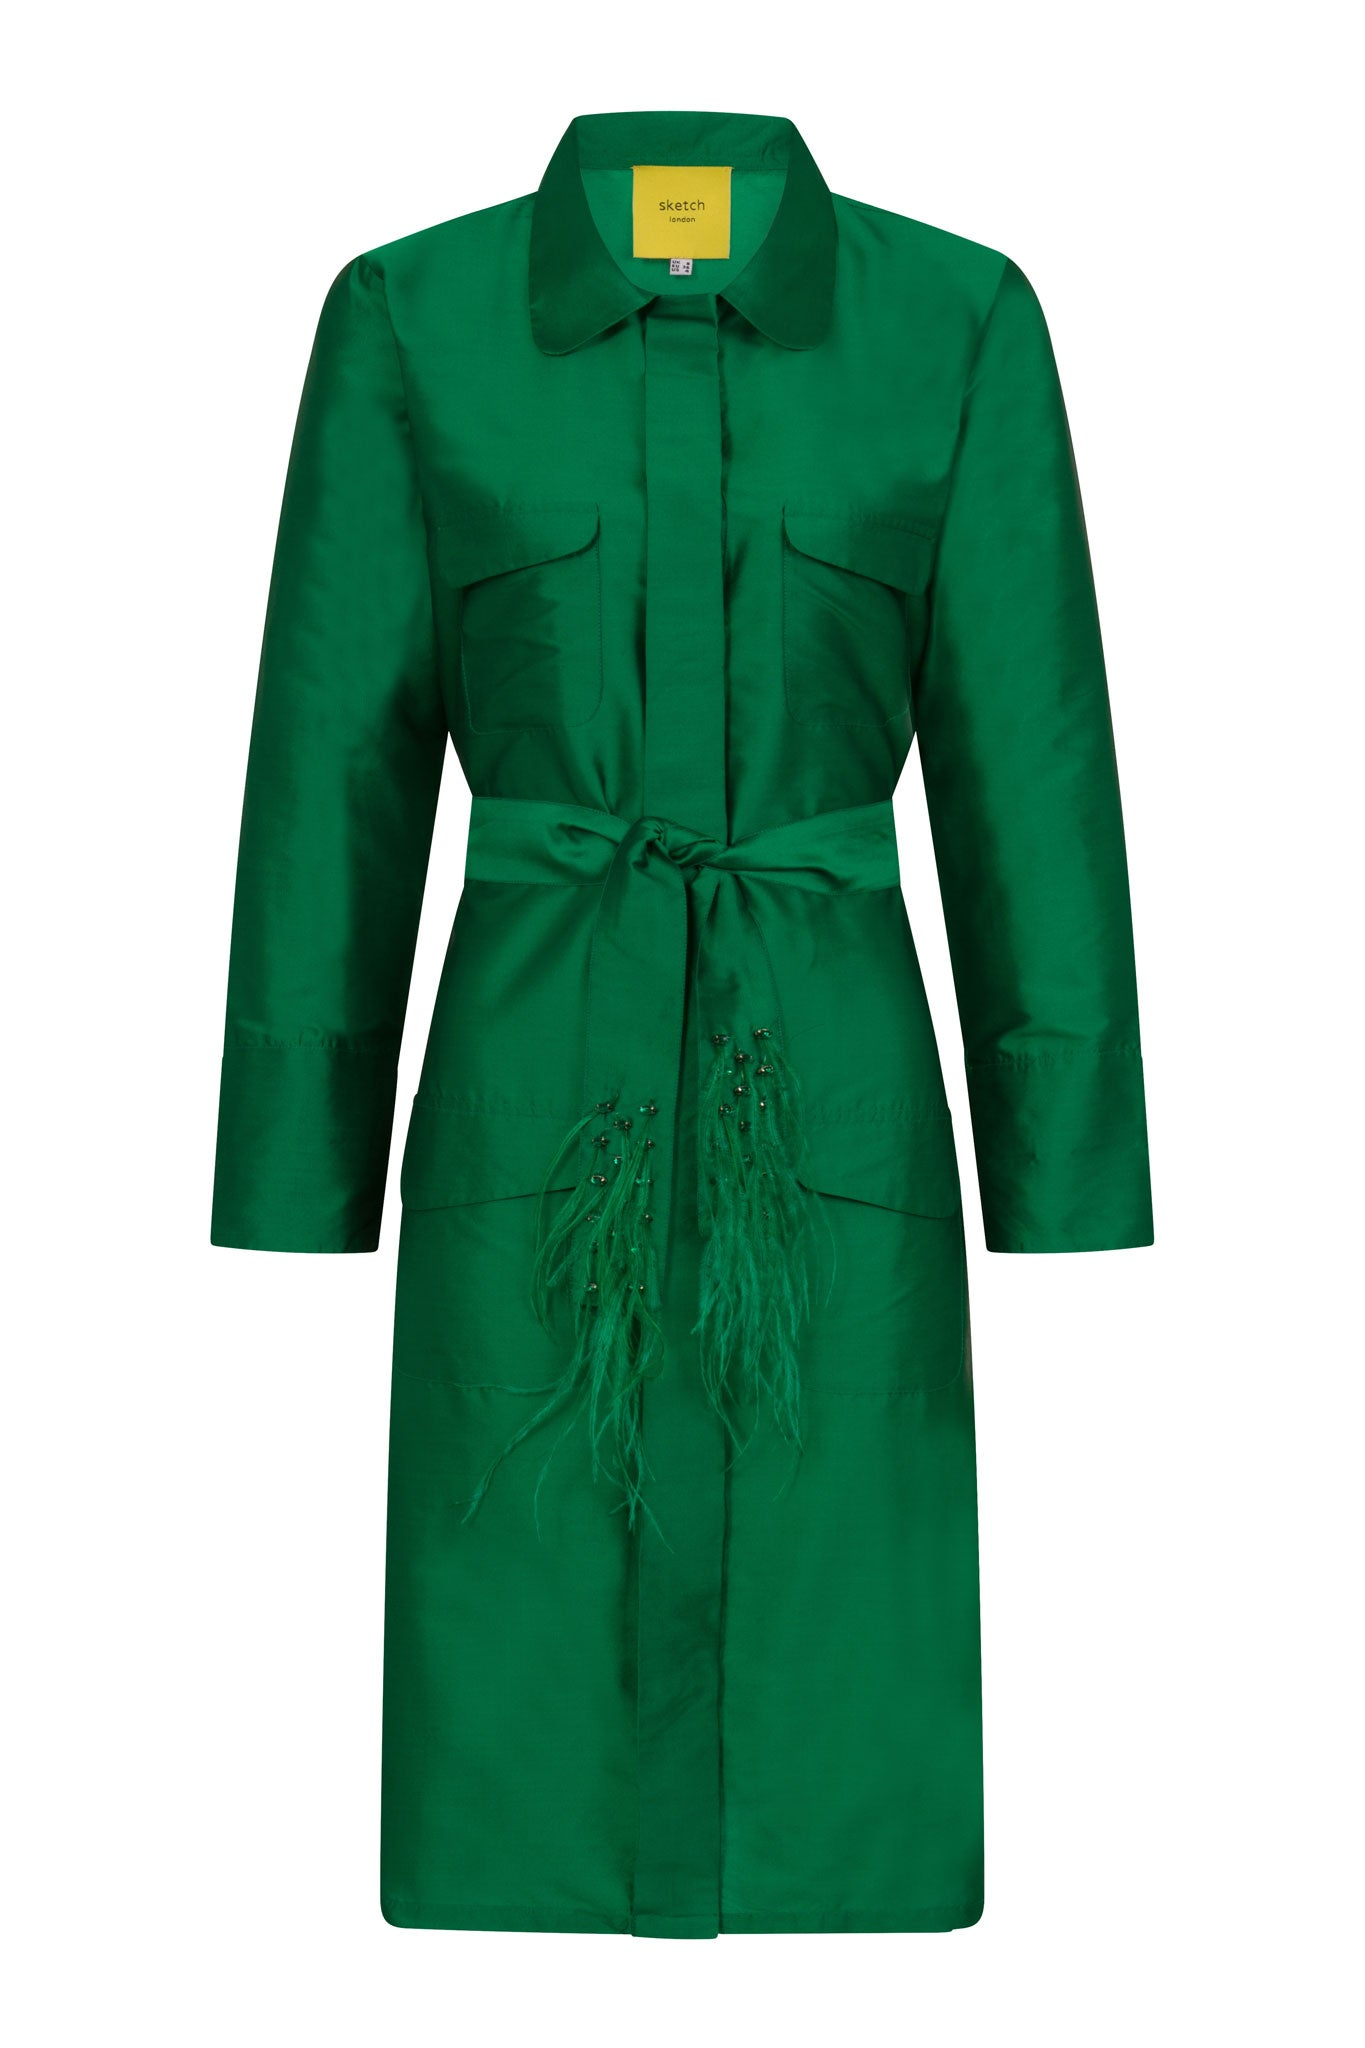 Sketch London cocktail trench coat emerald green ostrich feathers ethical sustainable